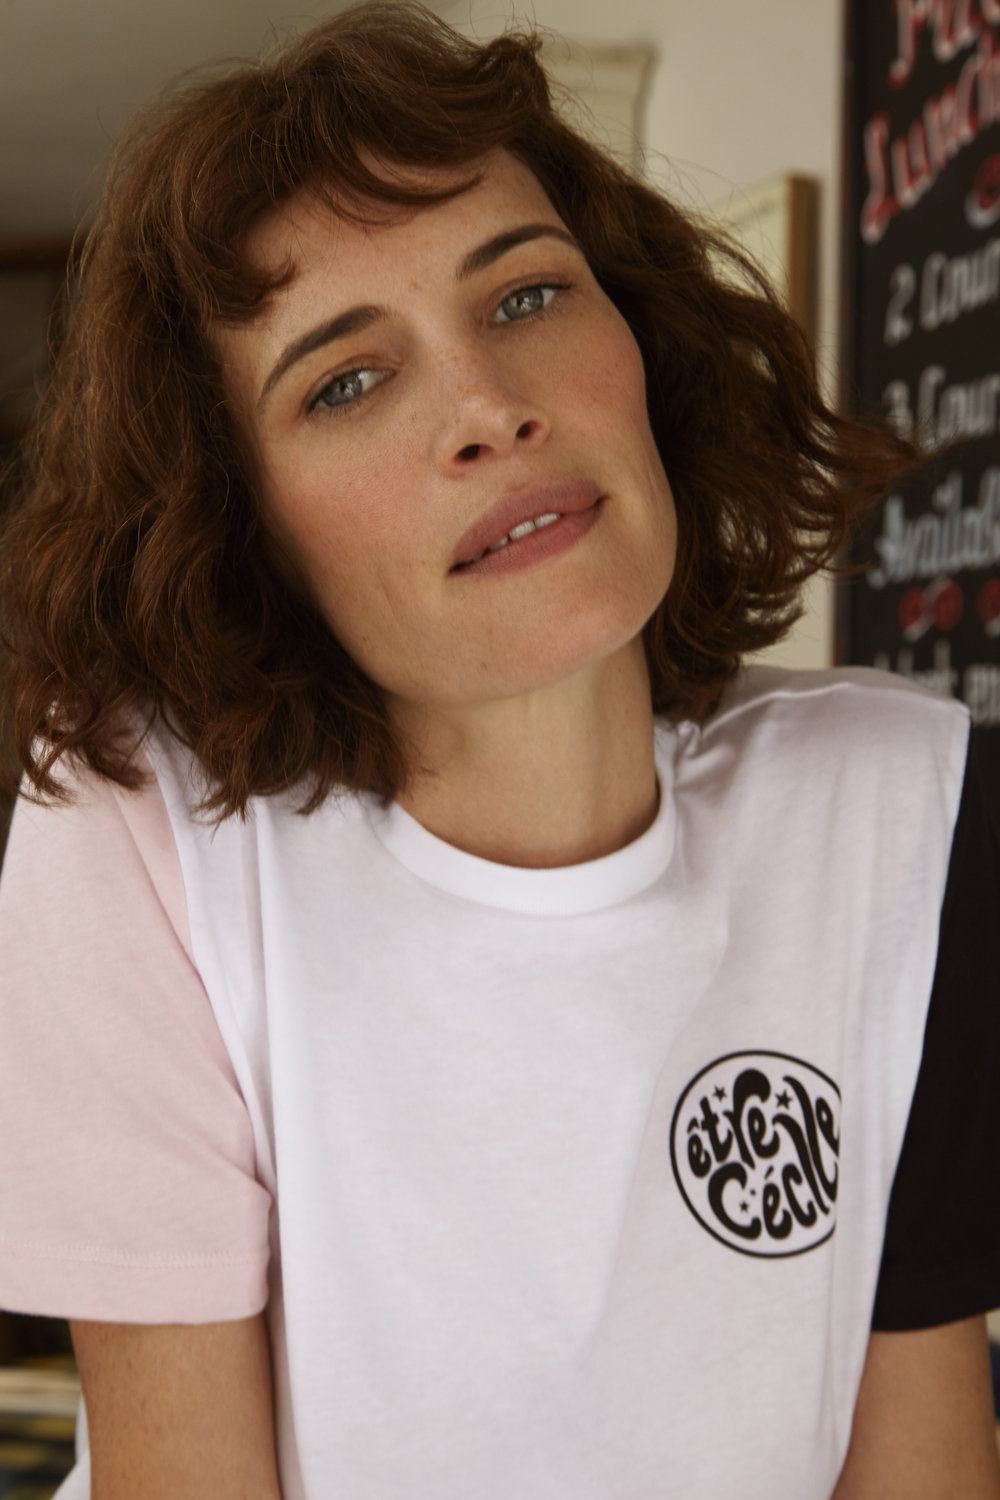 Etre Cecile was founded by Yasmin Sewell and Kyle Robinson, two London-based fashion specialists who were driven to fill a gap in the market for accessible, well priced luxury essentials.They have put their own twist on the idea with tongue-in cheek slogans, punchy prints and luxury fabrications. -